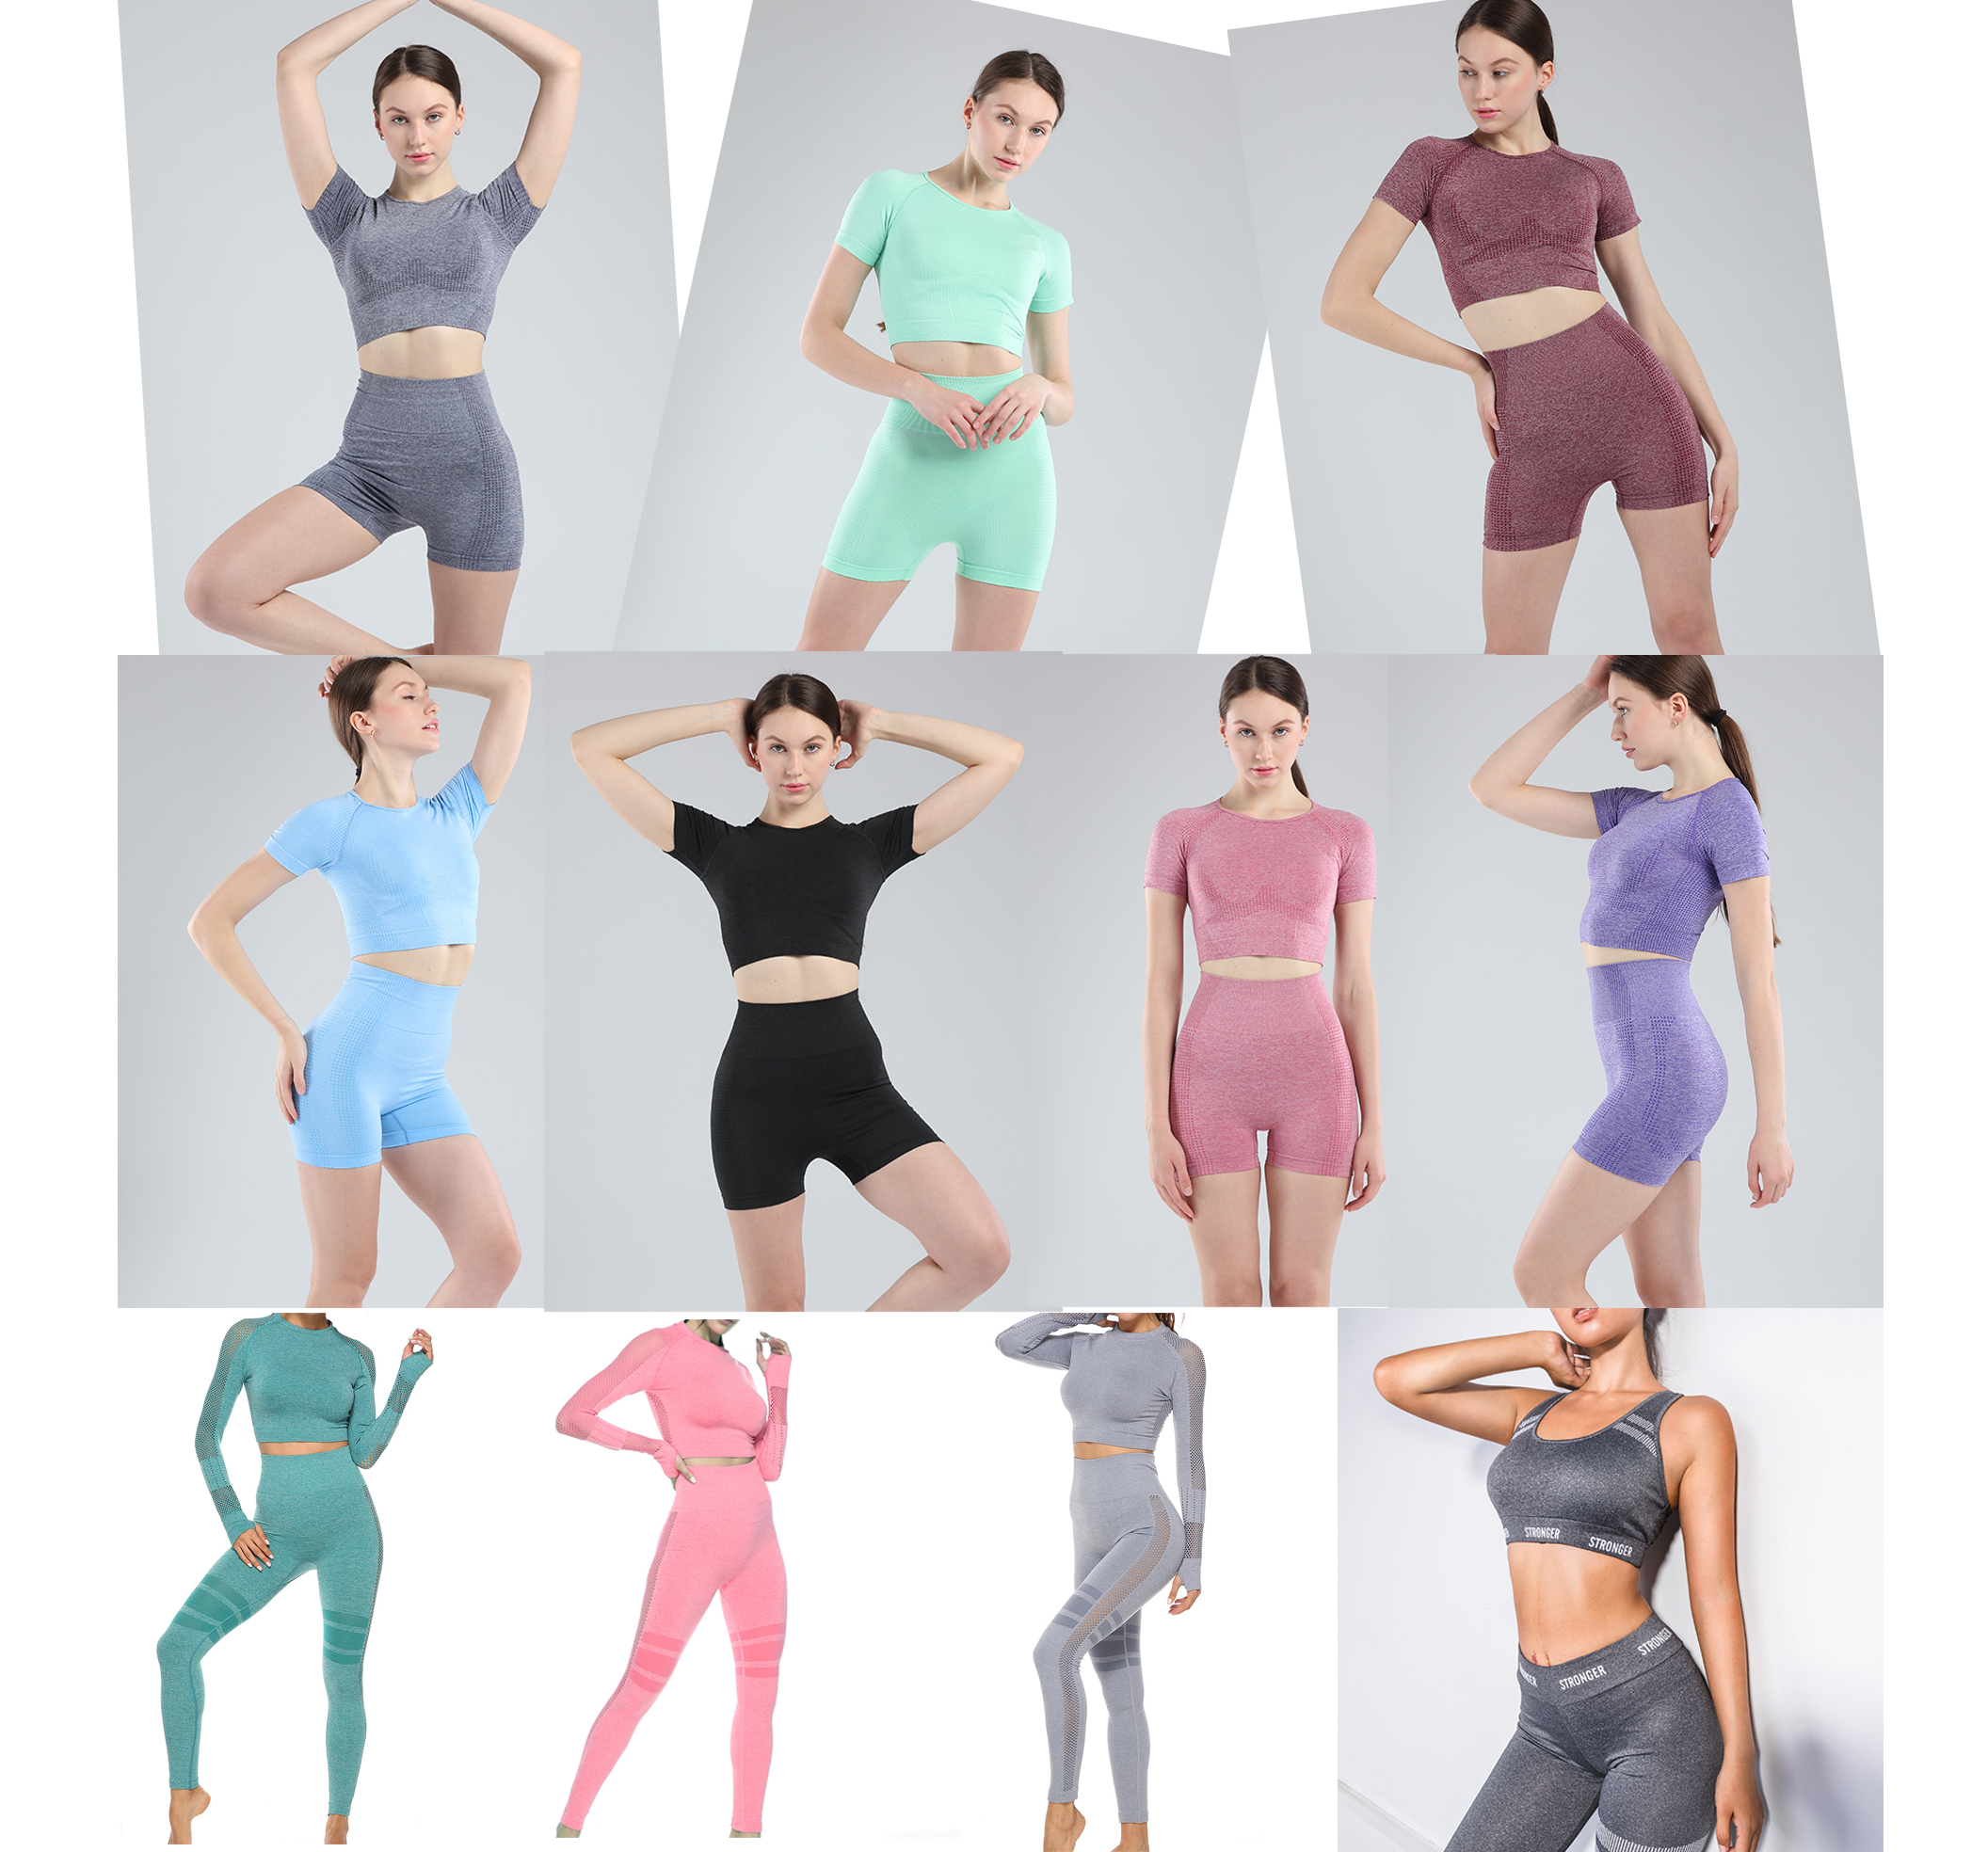 Compression dry fit biker women candy shorts lady girl outfits romper snickers running workout fitness woman sport shorts